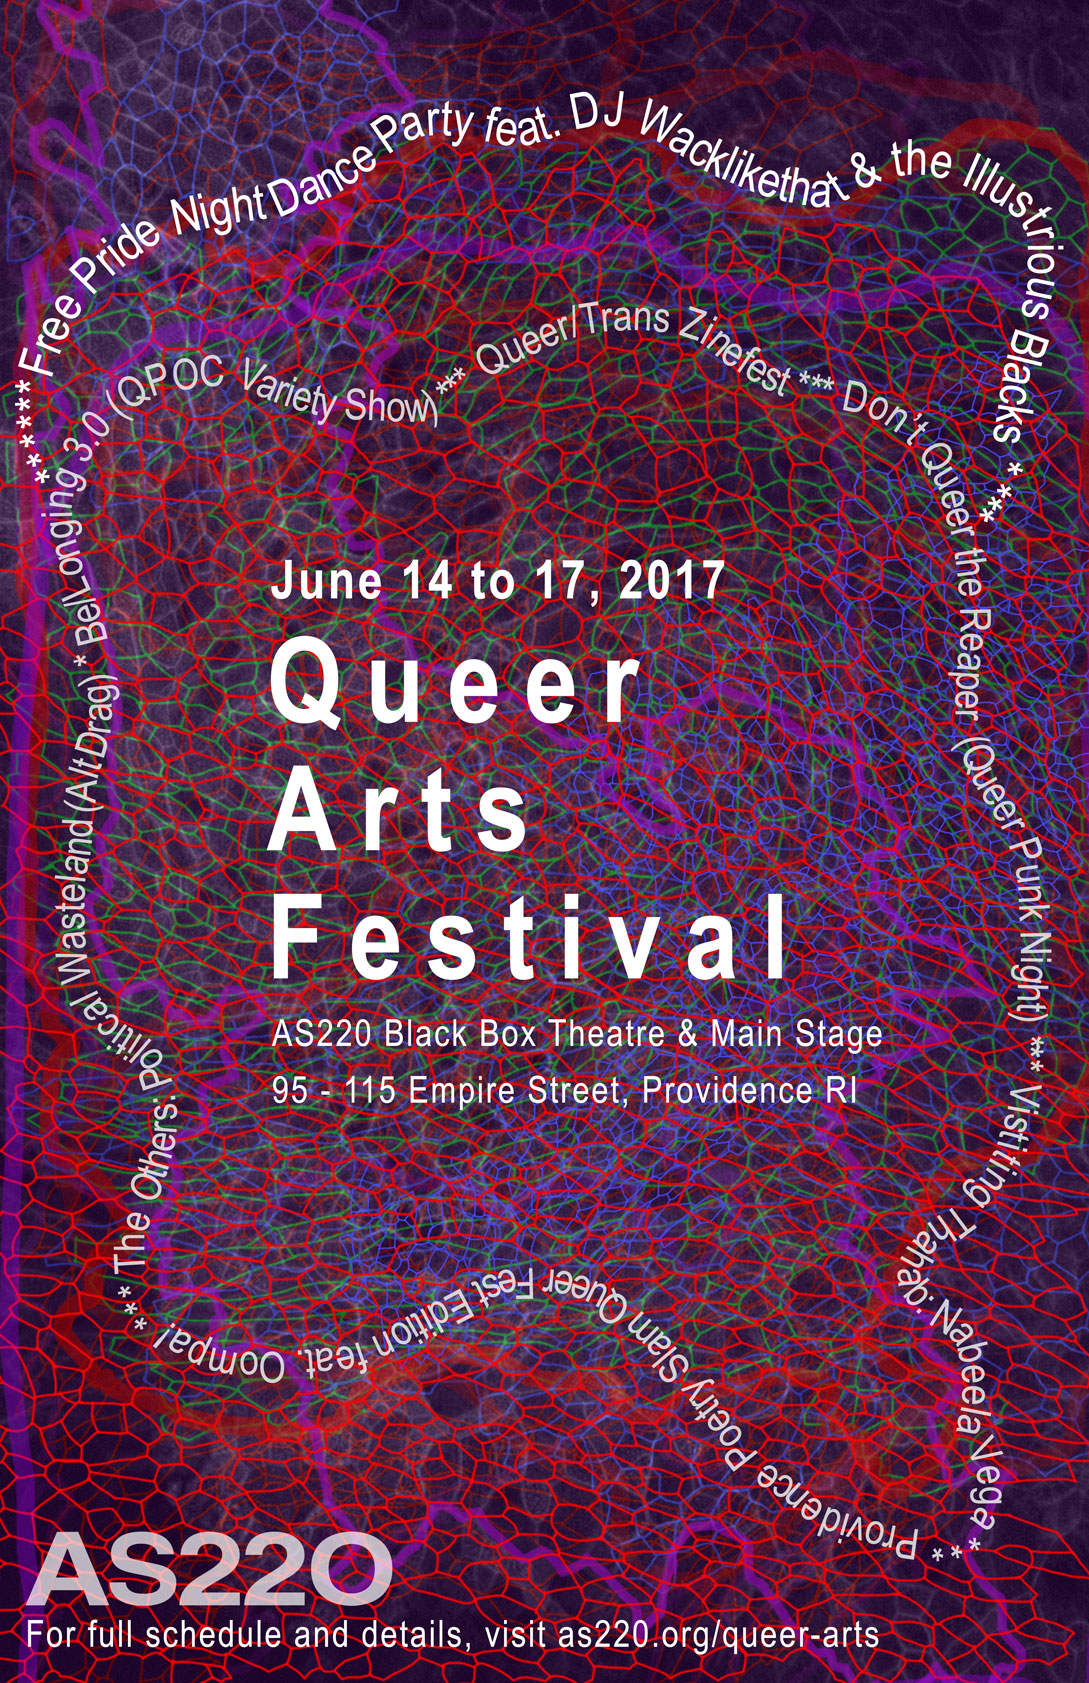 AS220 Queer Arts Festival Poster 2017